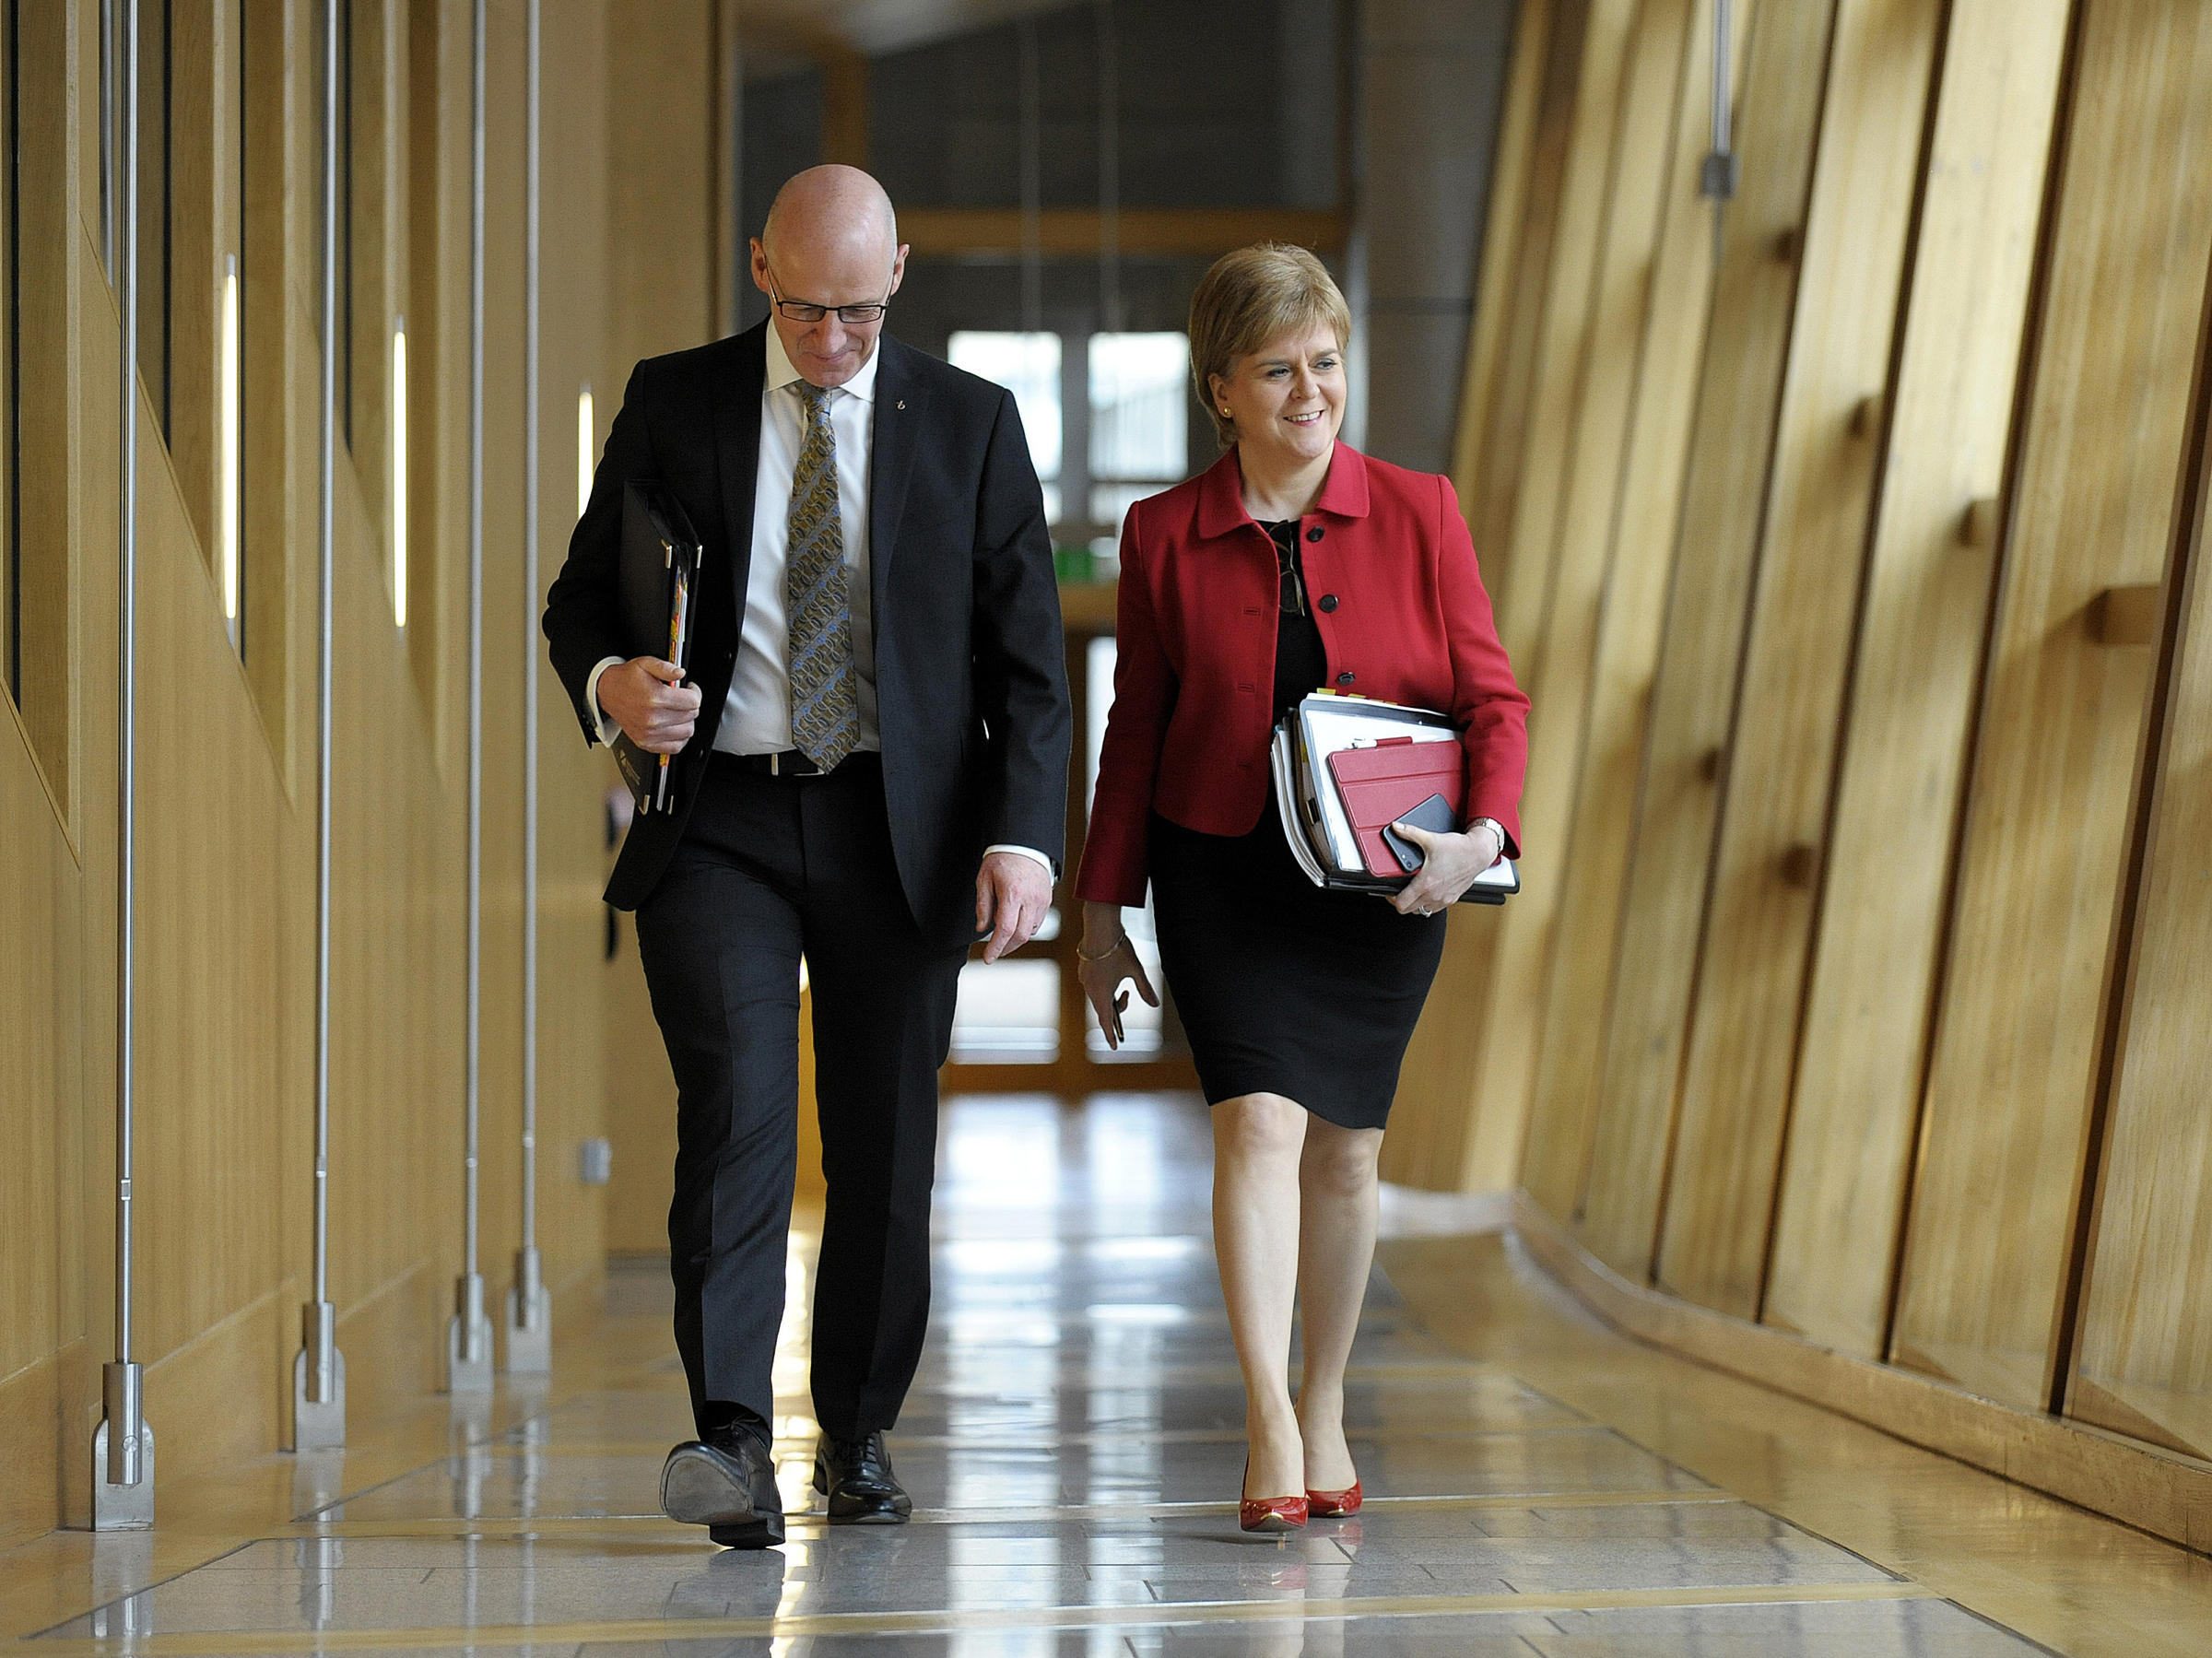 Holyrood backs Nicola Sturgeon's call for second referendum